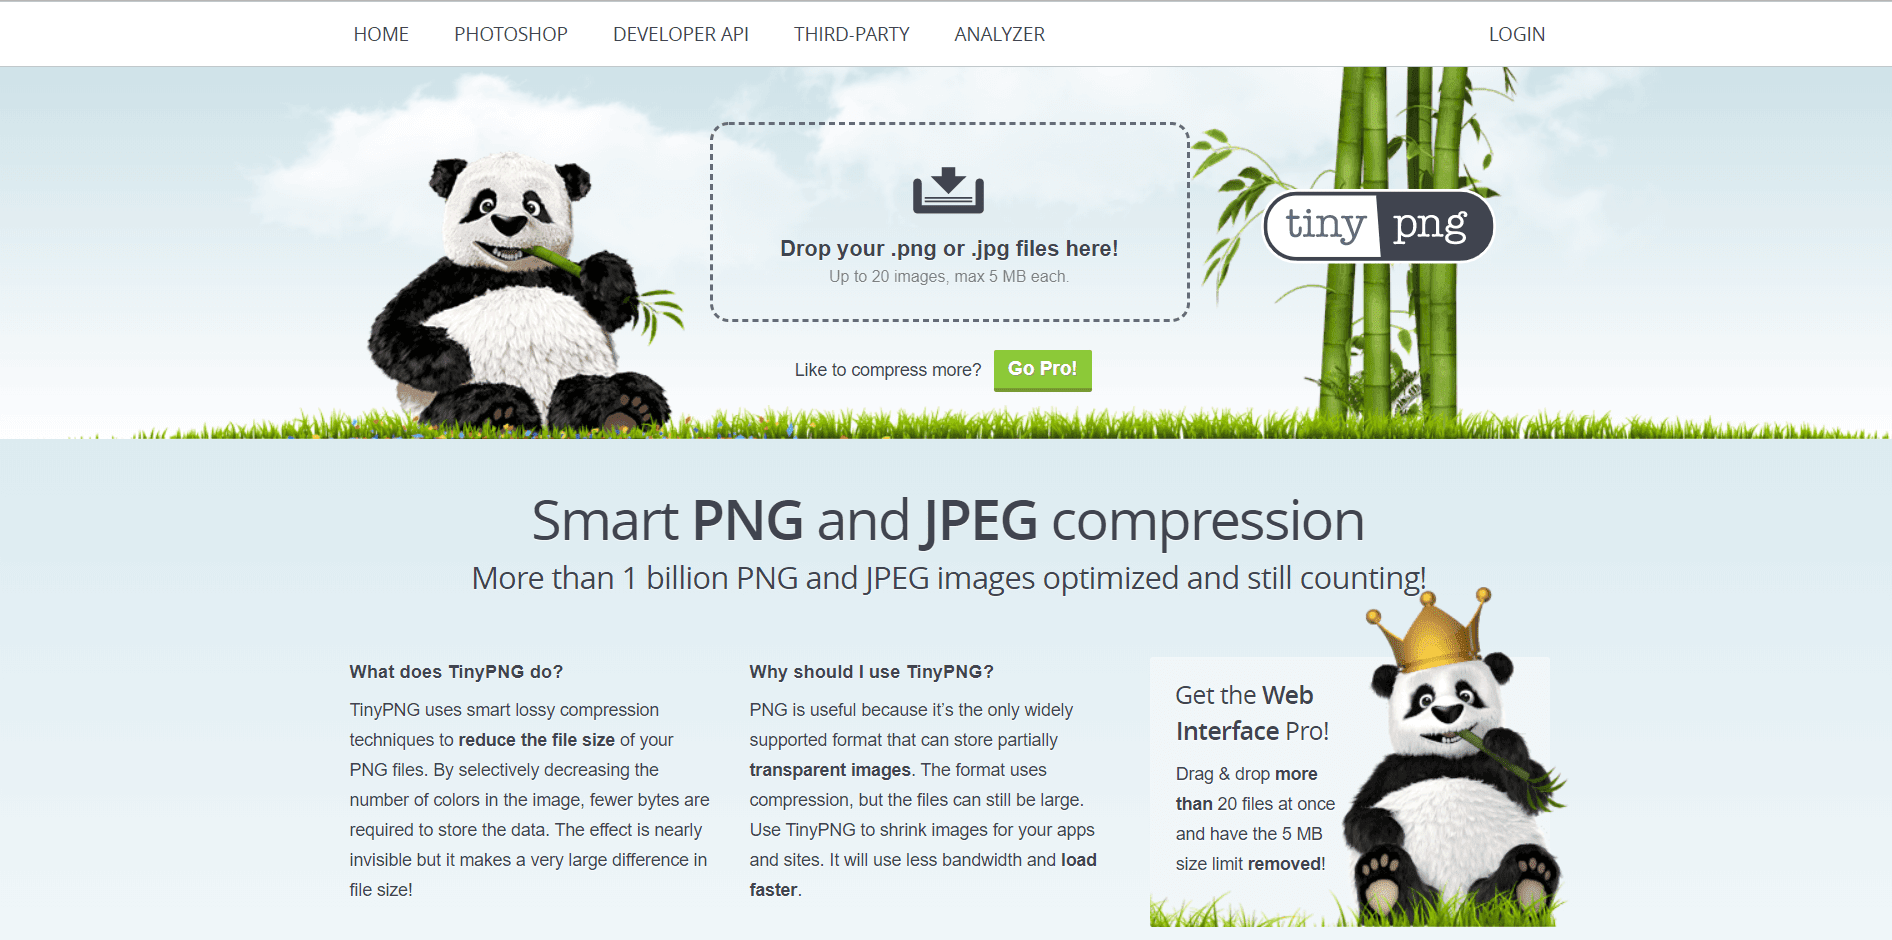 TinyPNG homepage. Image of a panda eating bamboo as well as other text written on the screen.